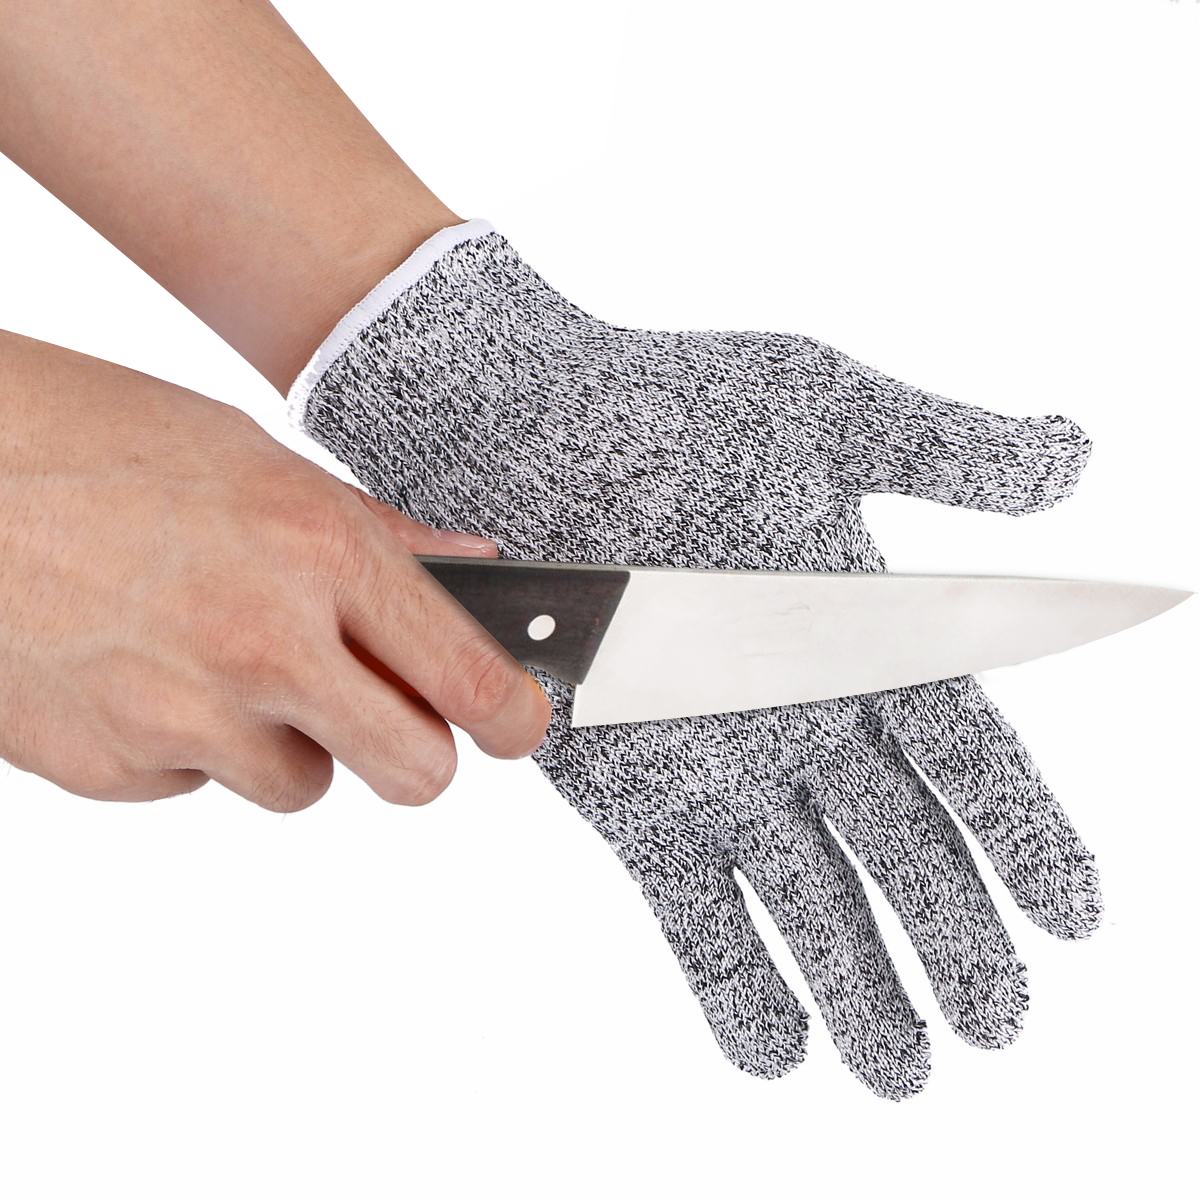 Nmsafety Cut Resistance Gloves Working Kitchen Level 5 Cut Protective Sandy Nitrile Gloves XL